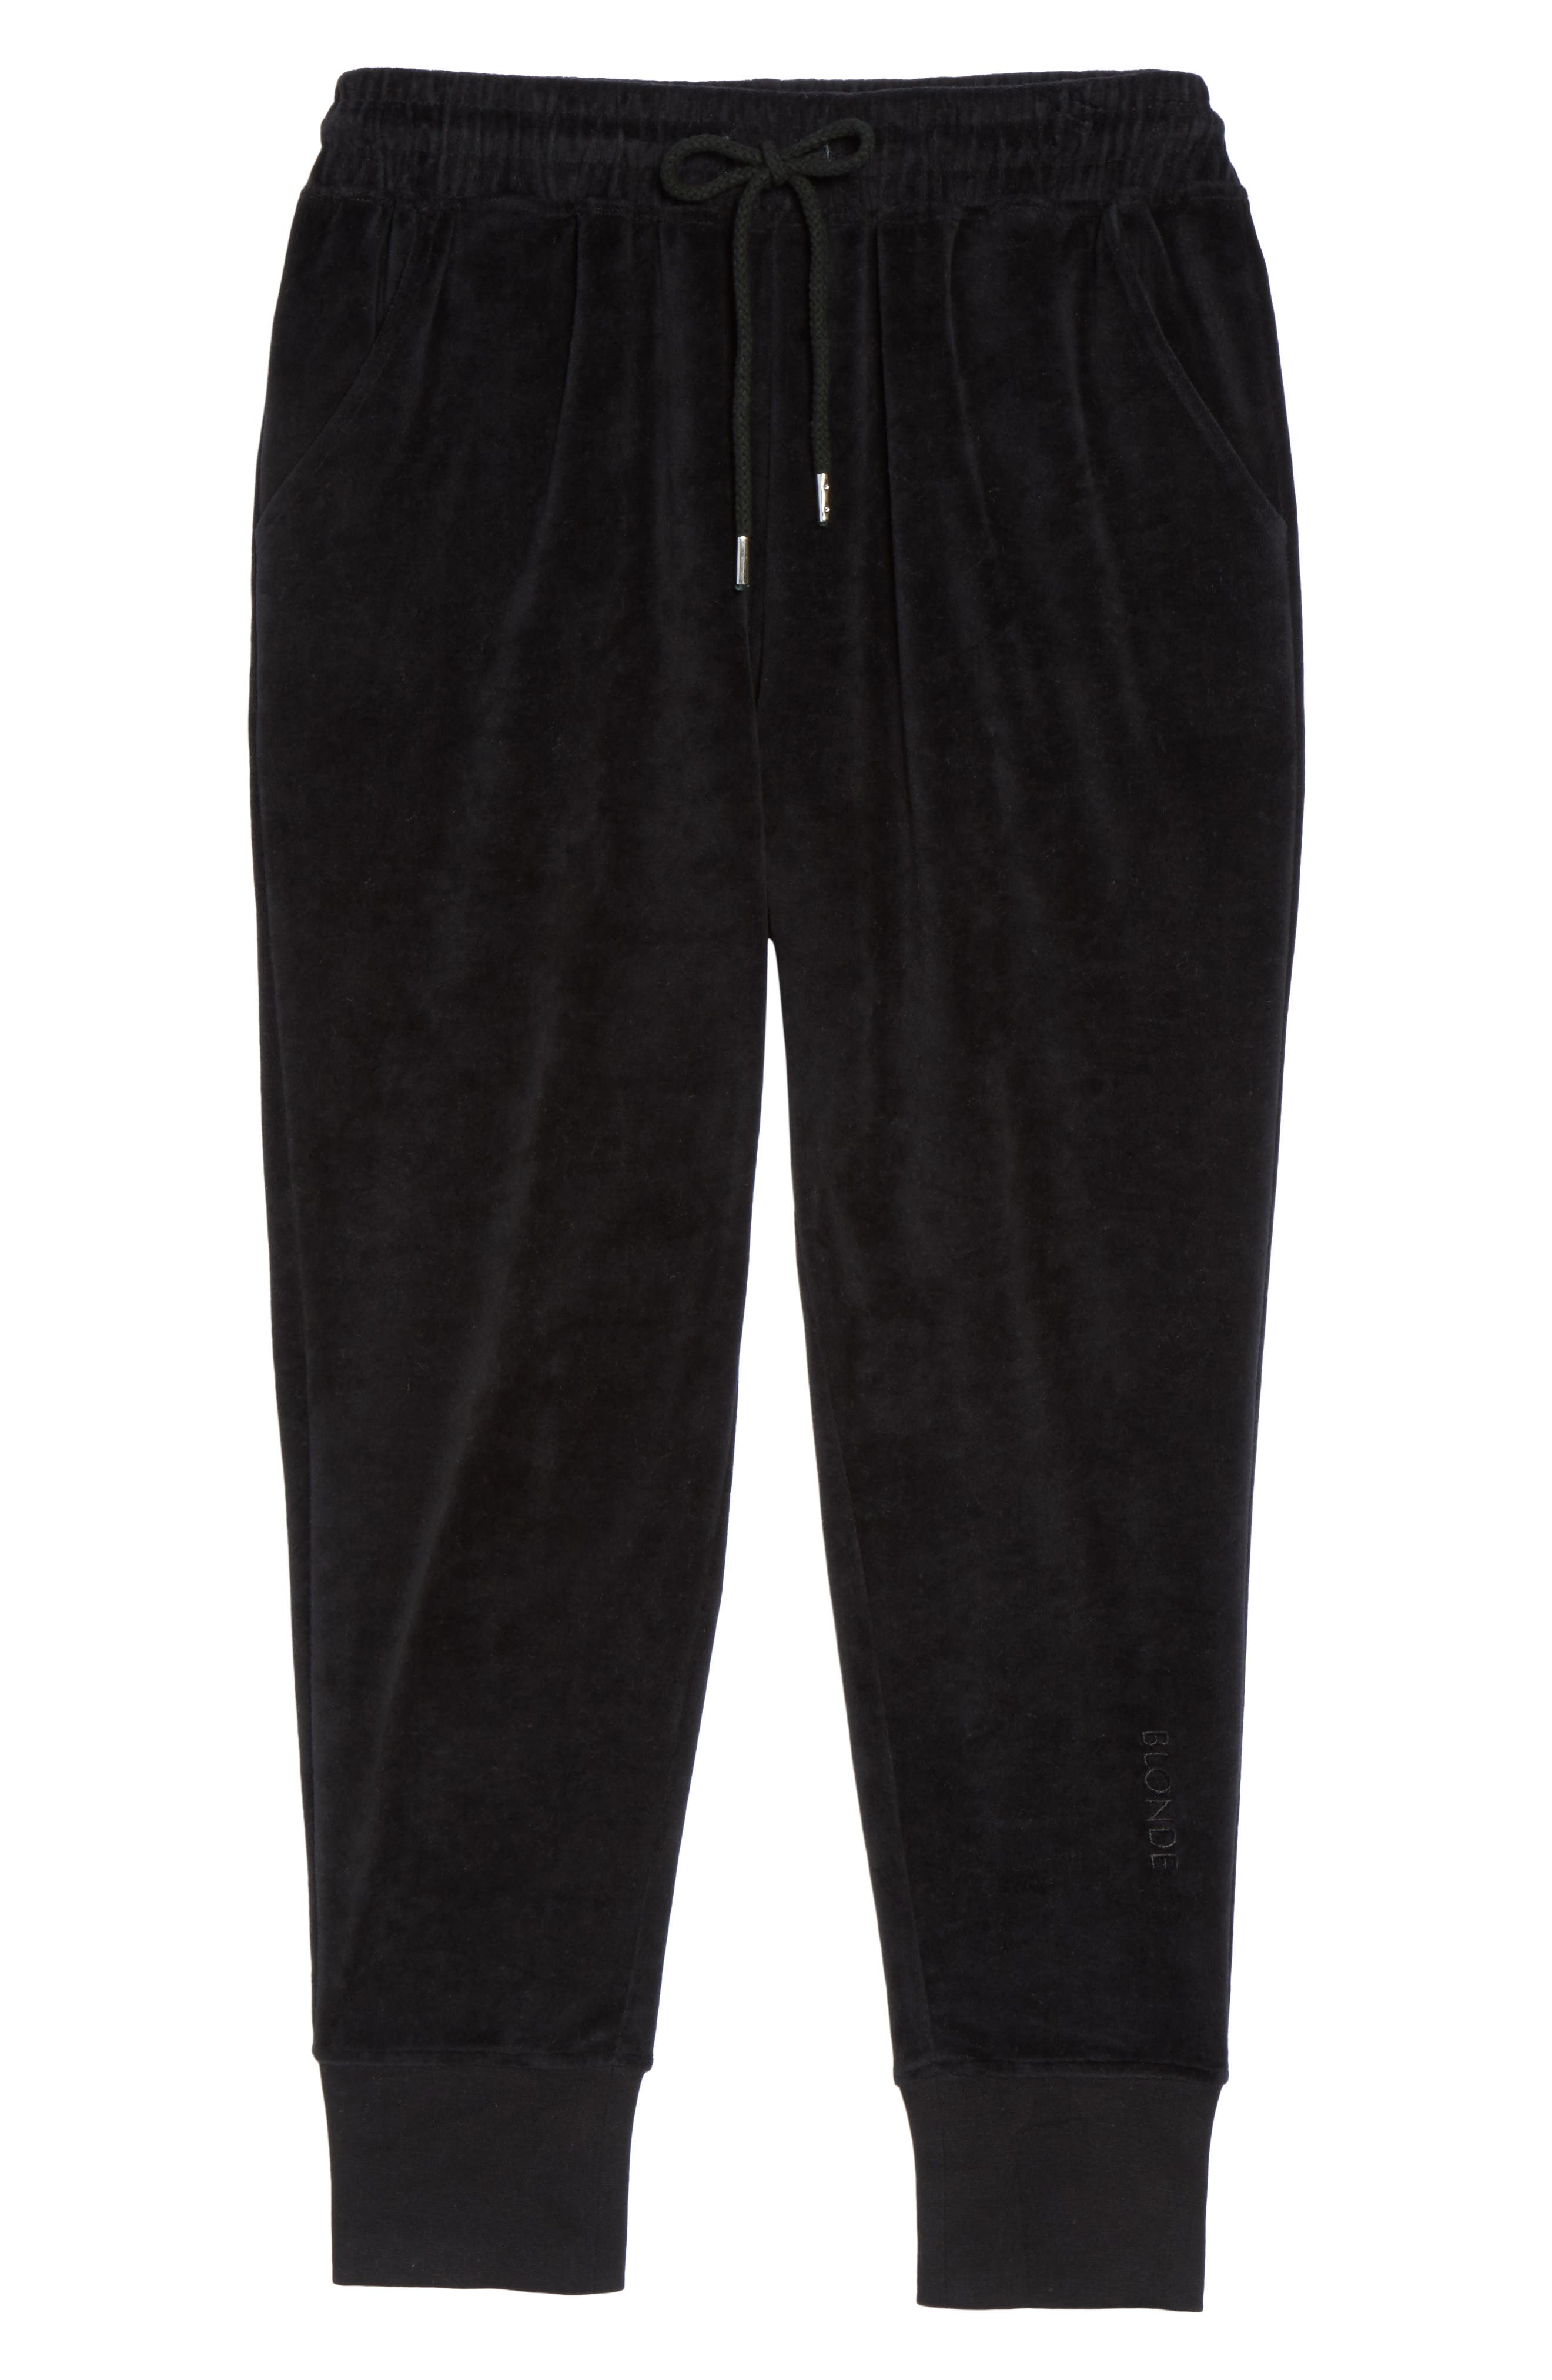 Blonde Embroidered Velour Jogger Pants,                             Alternate thumbnail 5, color,                             Black